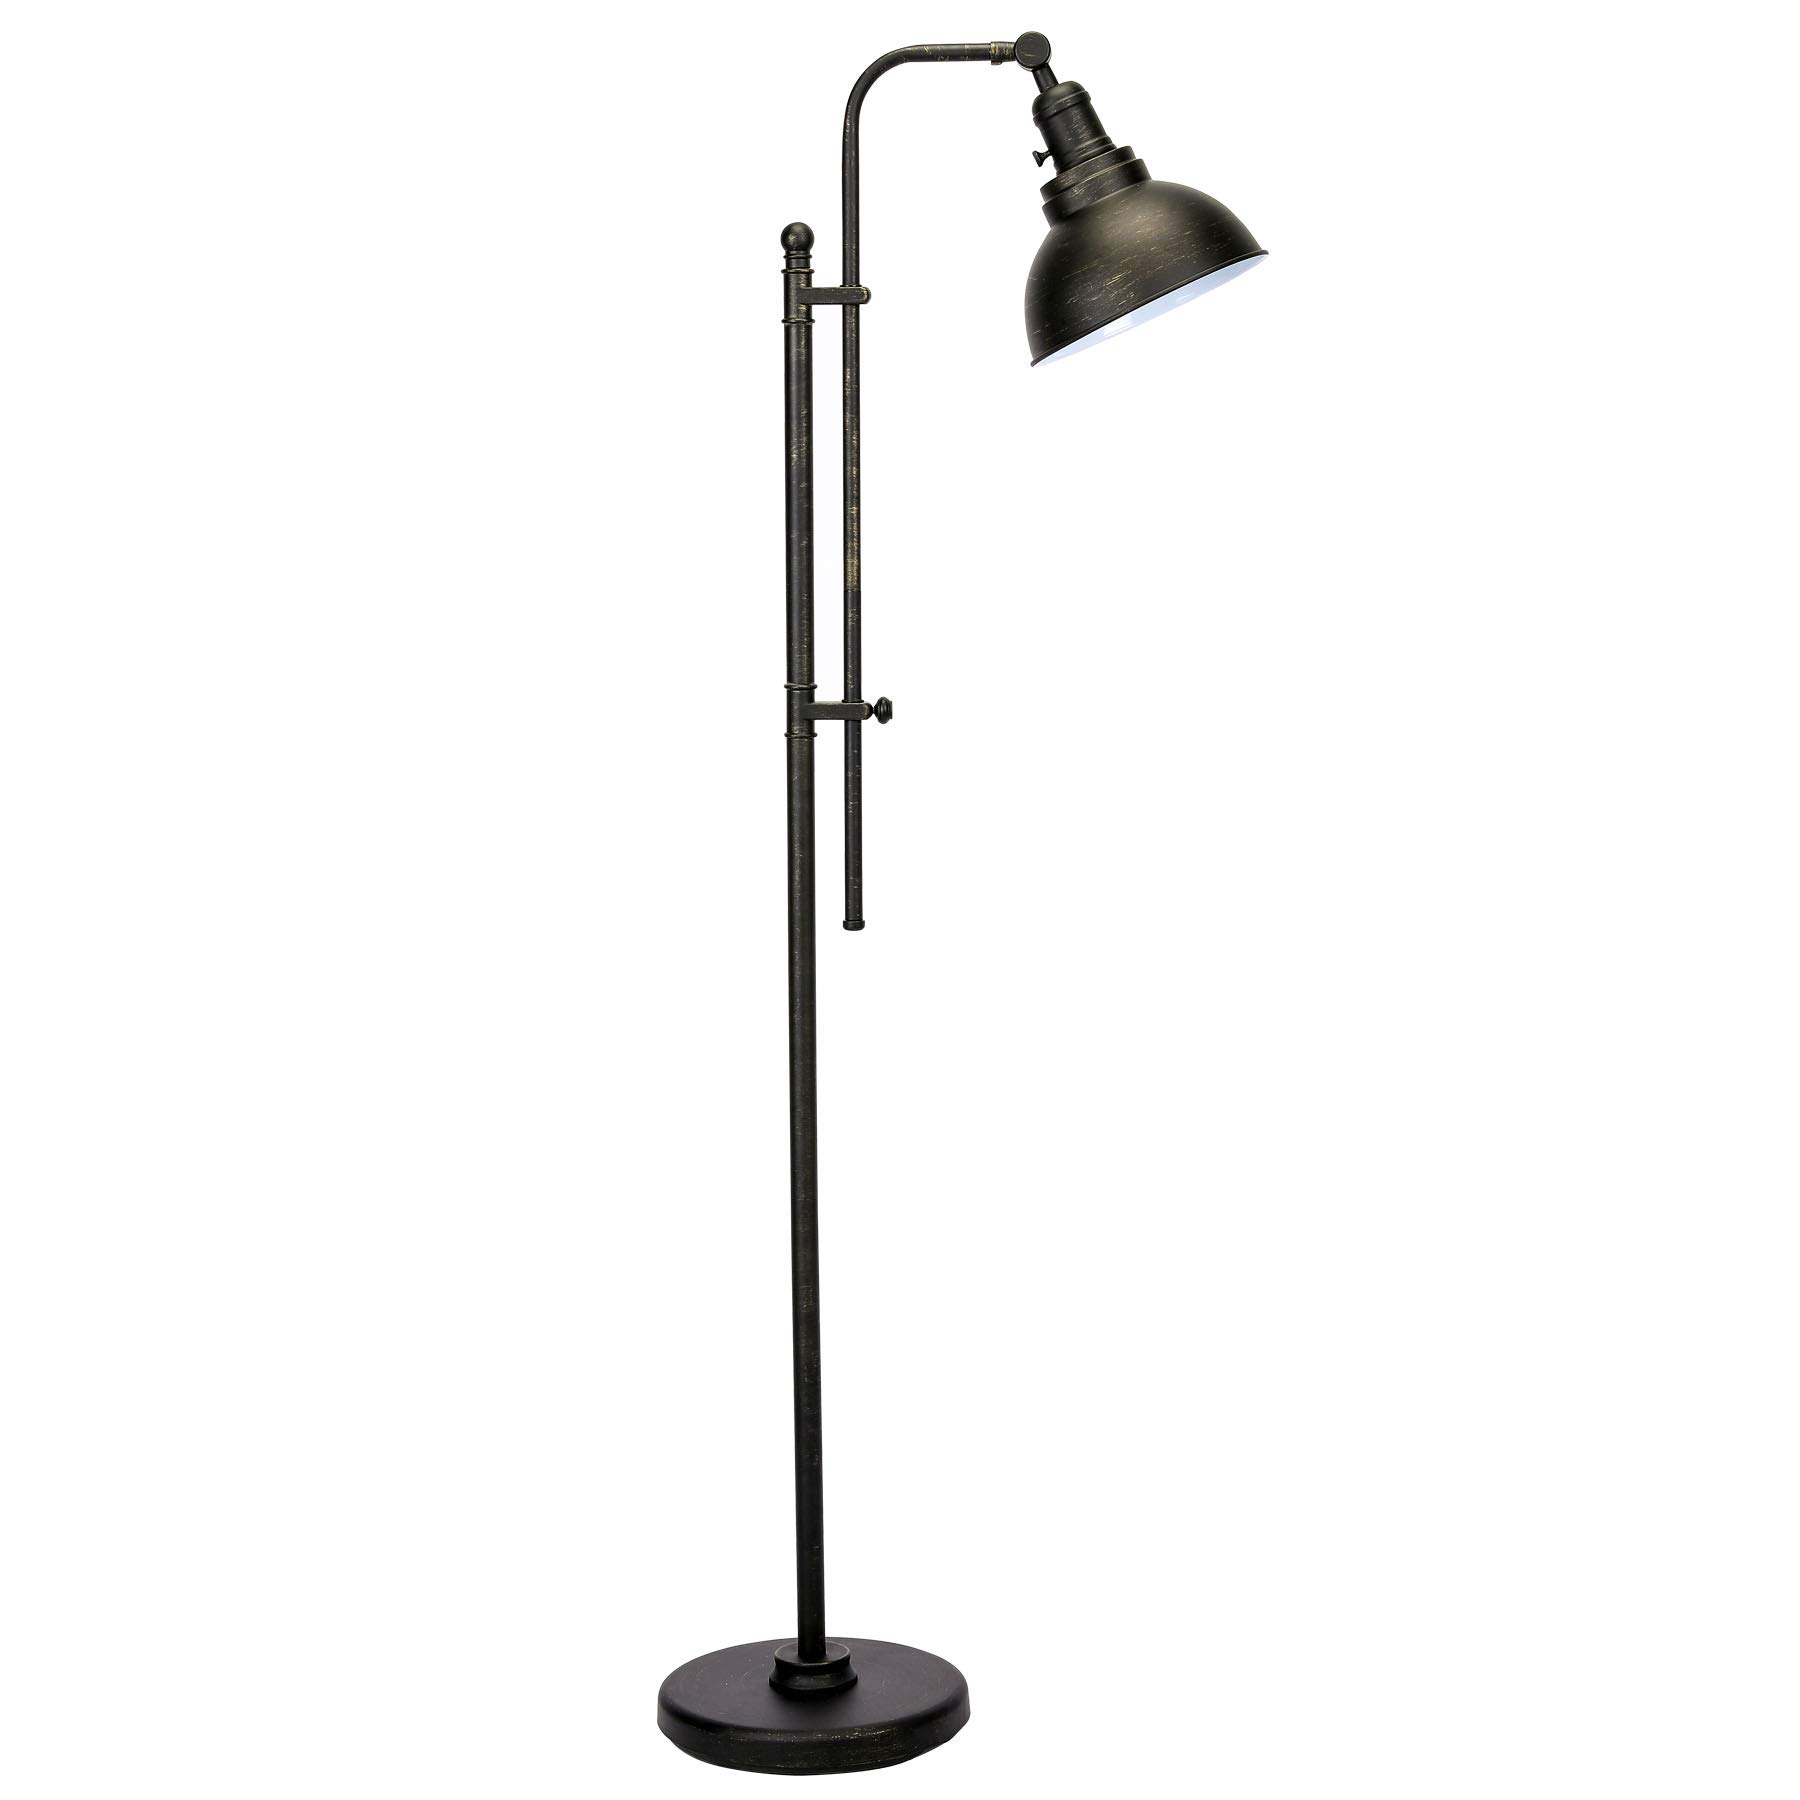 CO-Z Industrial Floor Lamp Adjustable, 65 Inches Rustic Floor Task Lamp in Aged Bronze Finish, Standing Lamp with Metal Shade for Living Room Reading Bedroom Office.